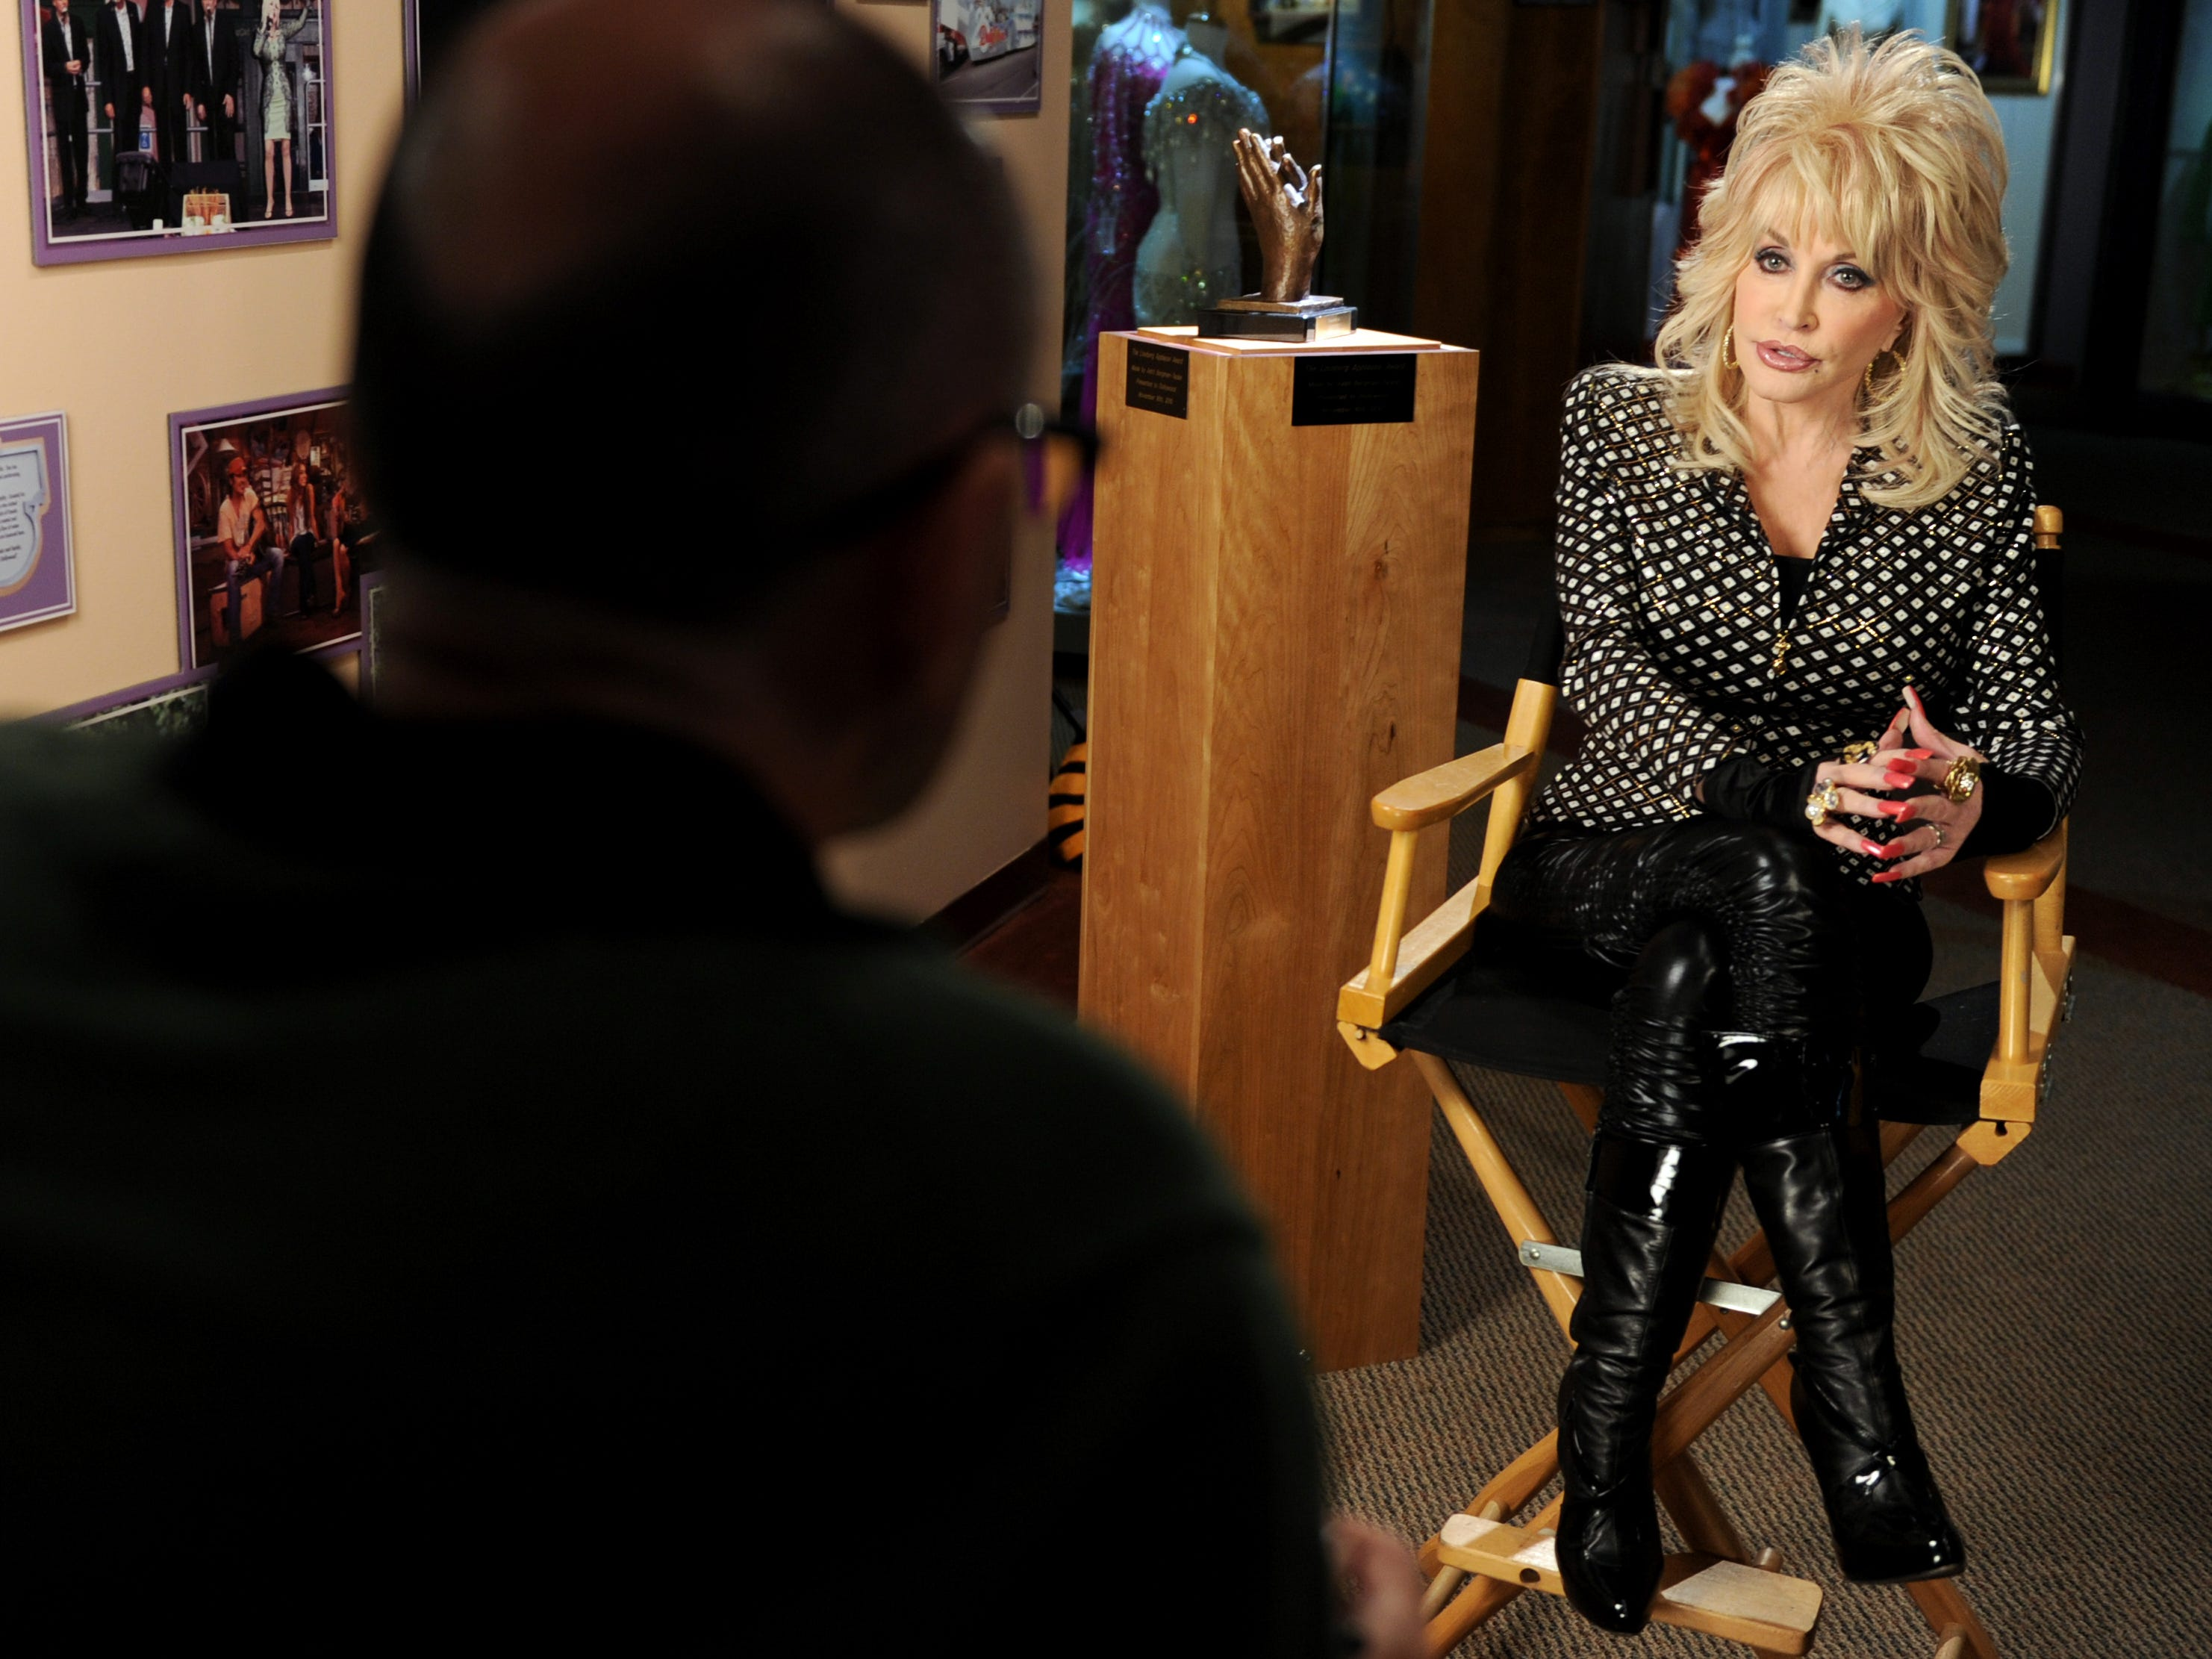 An interview with Dolly Parton  Friday, May. 6, 2011 to talk about Dollywood winning The Liseberg Applause Award.